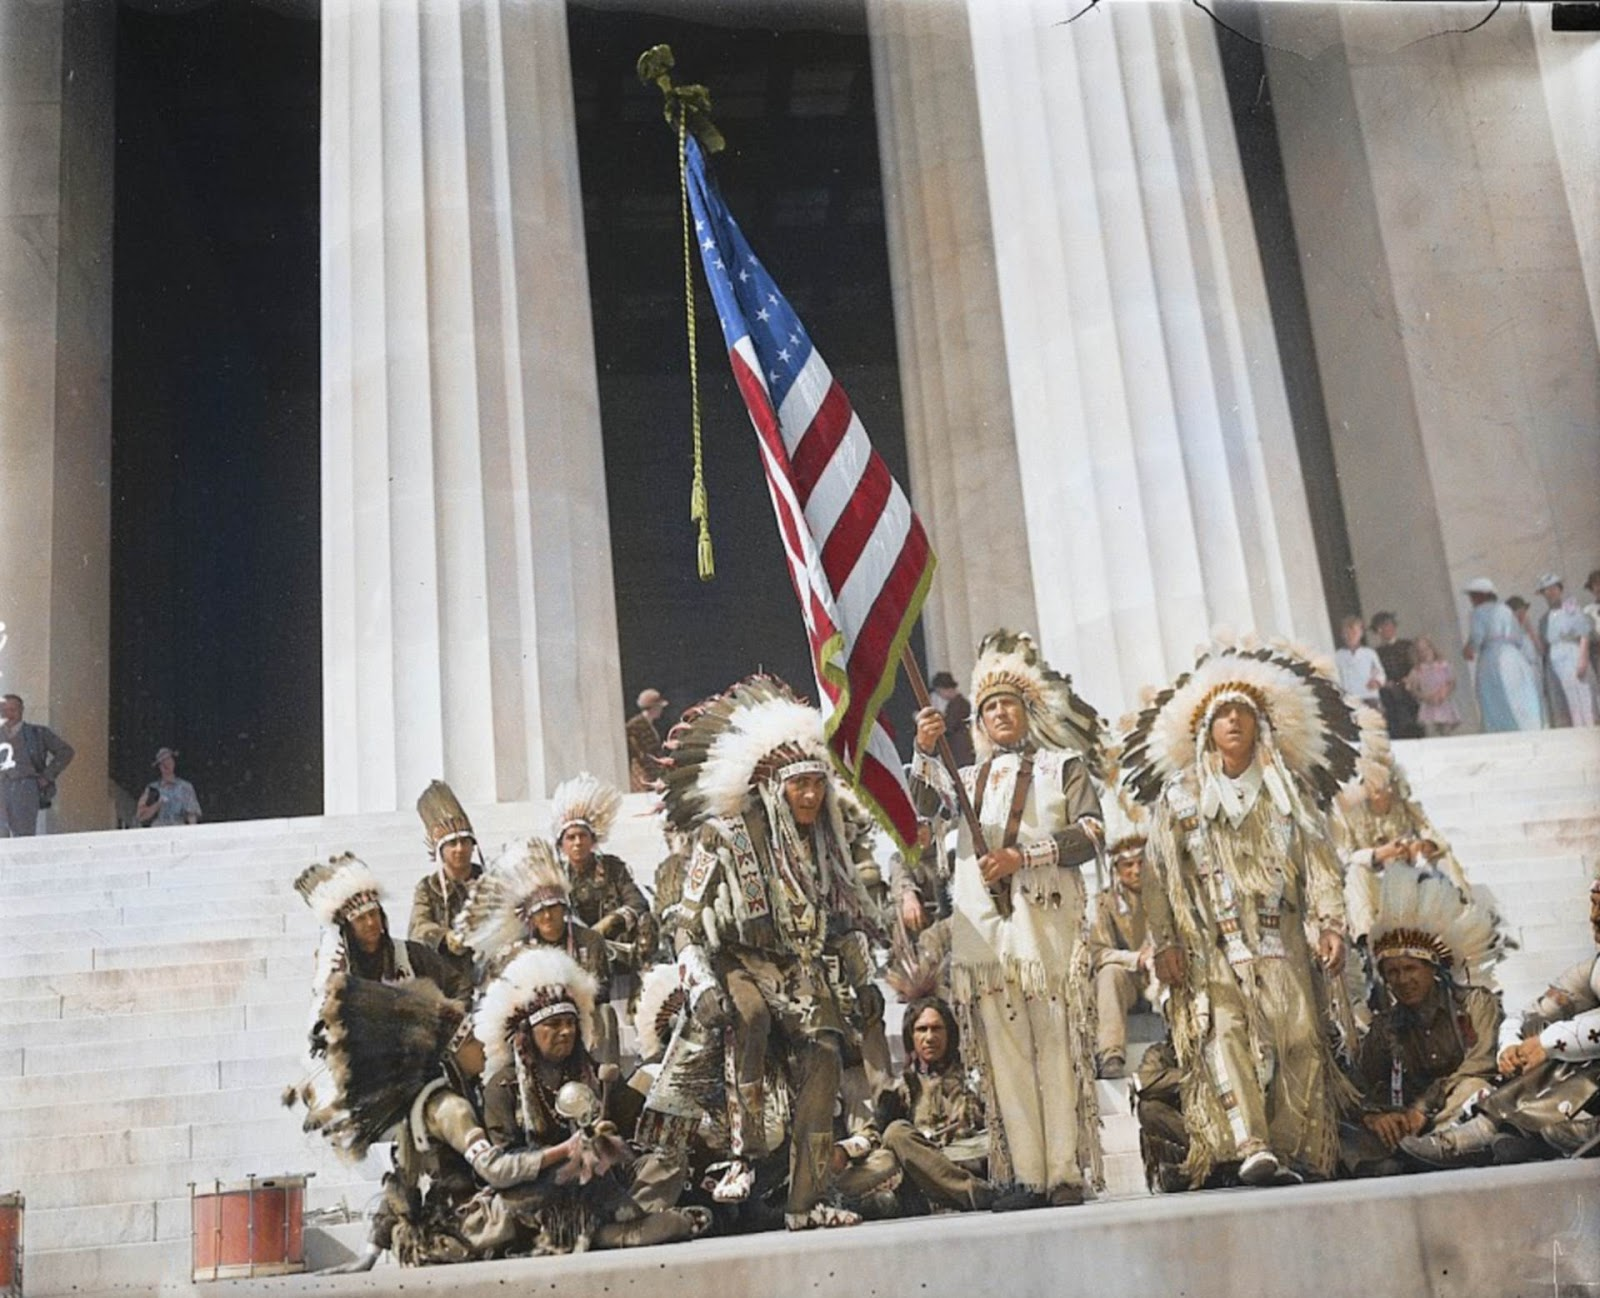 A group of Native American men wearing their traditional attire while raising the Stars and Stripes at the Lincoln Memorial in 1936